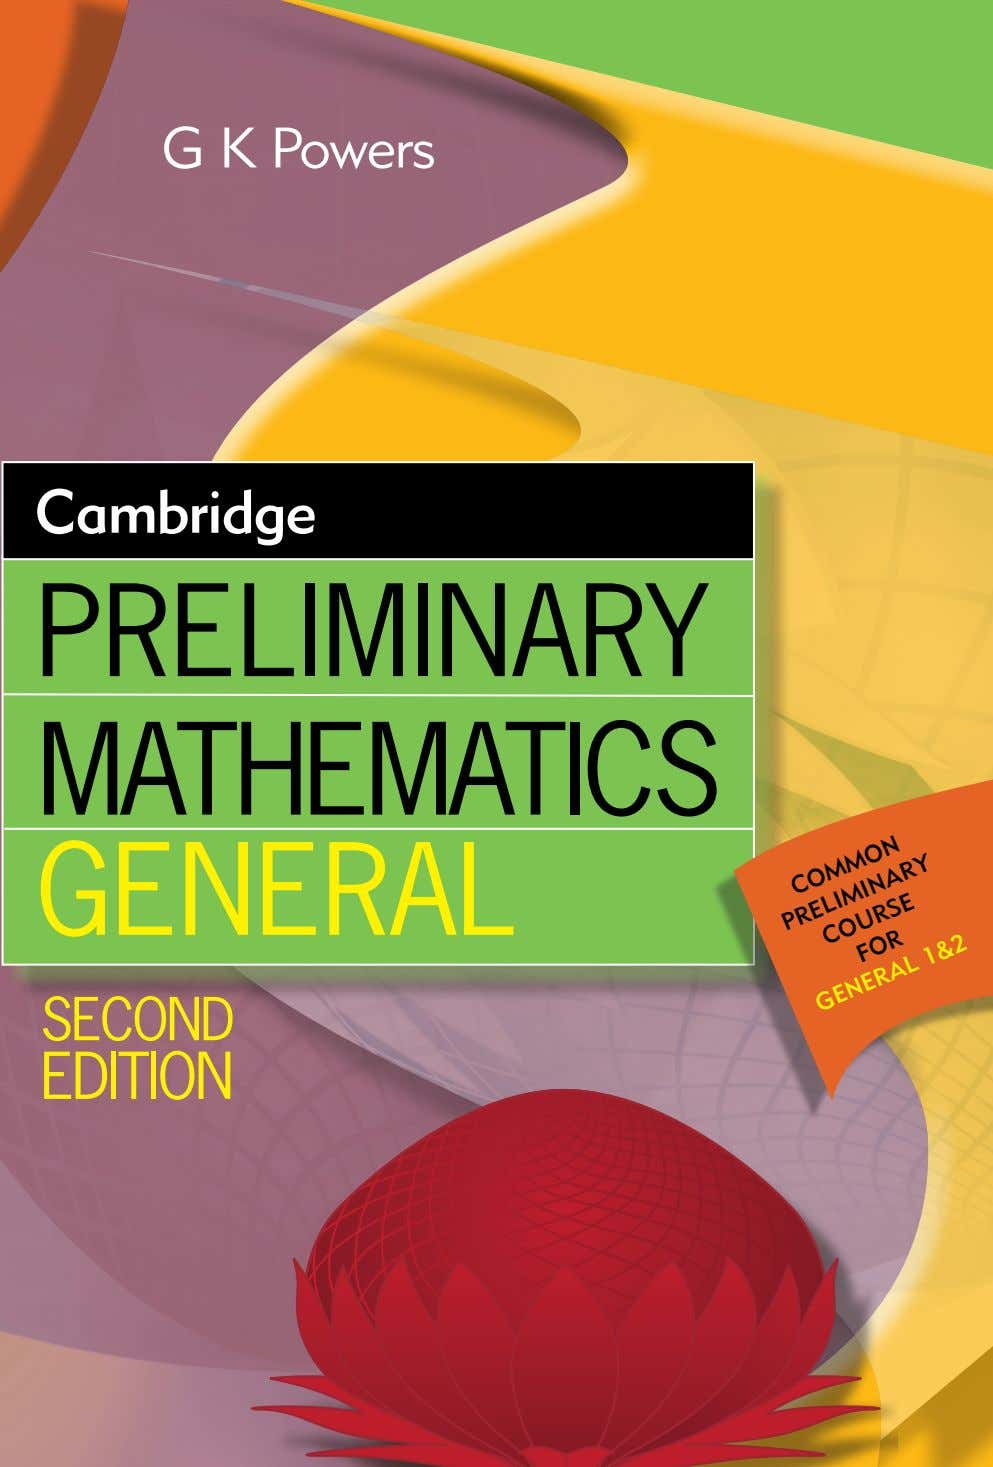 G K Powers Cambridge Preliminary mathematics General second edition Common preliminary Course for 1&2